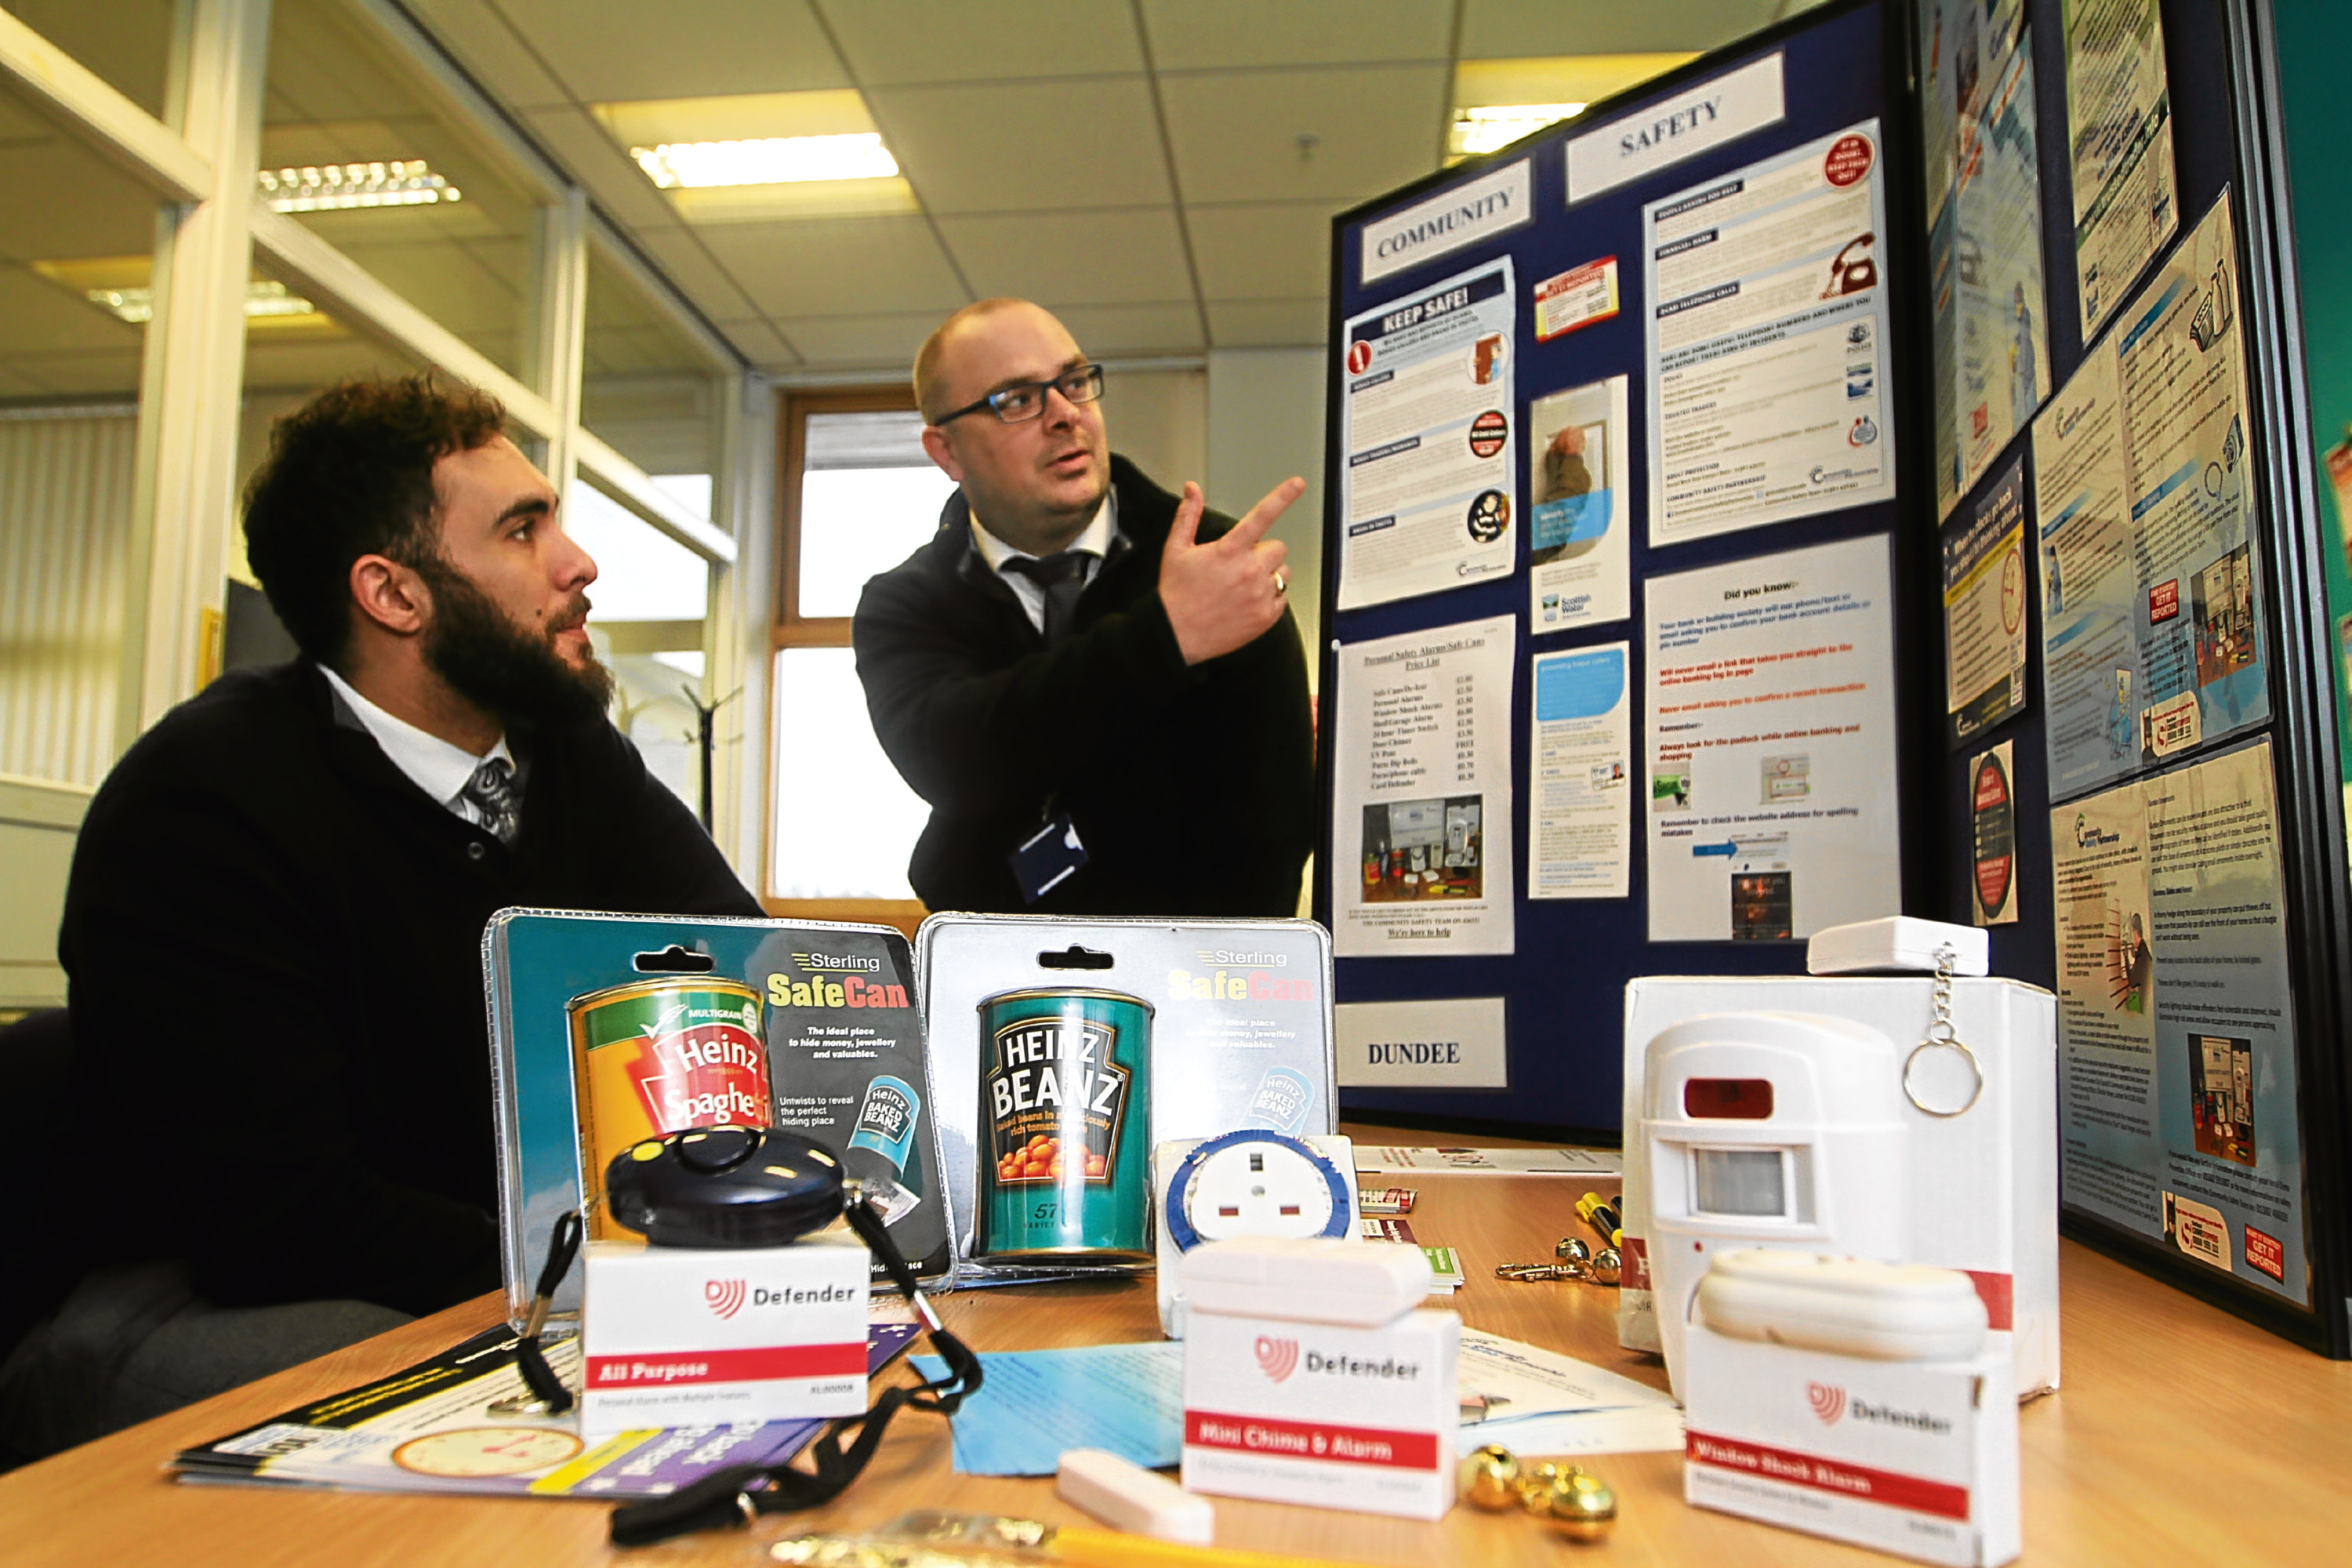 Council community safety manager Garyth Jardine  shows our reporter some of the safety products available.